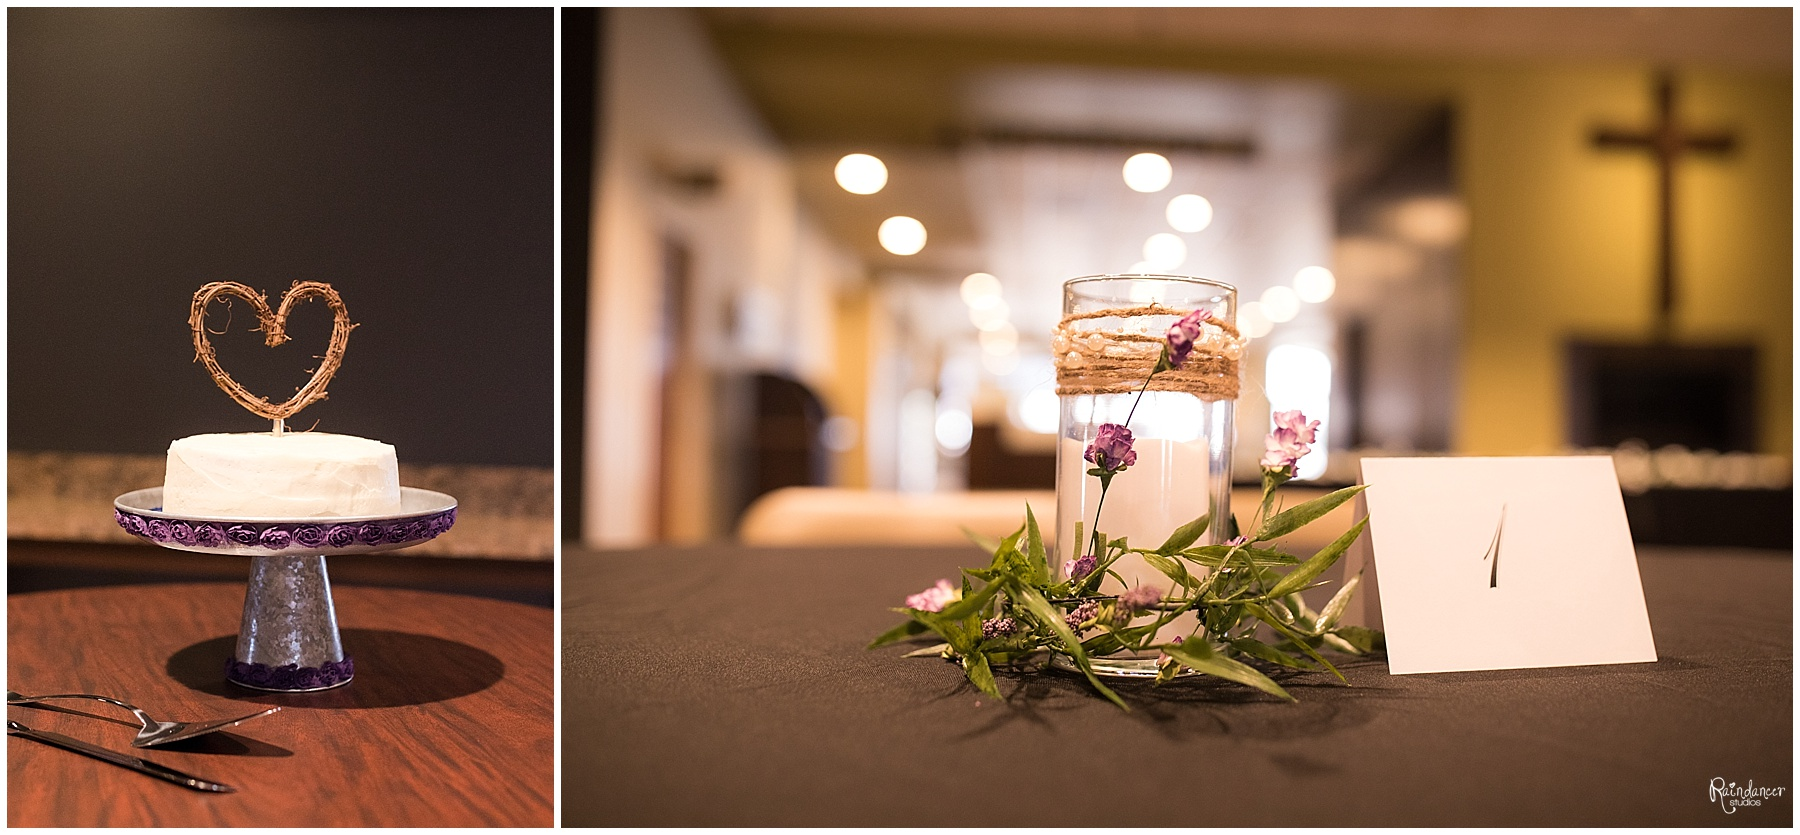 Wedding cake and table decorations by Raindancer Studios Indianapolis Wedding Photographer Jill Howell